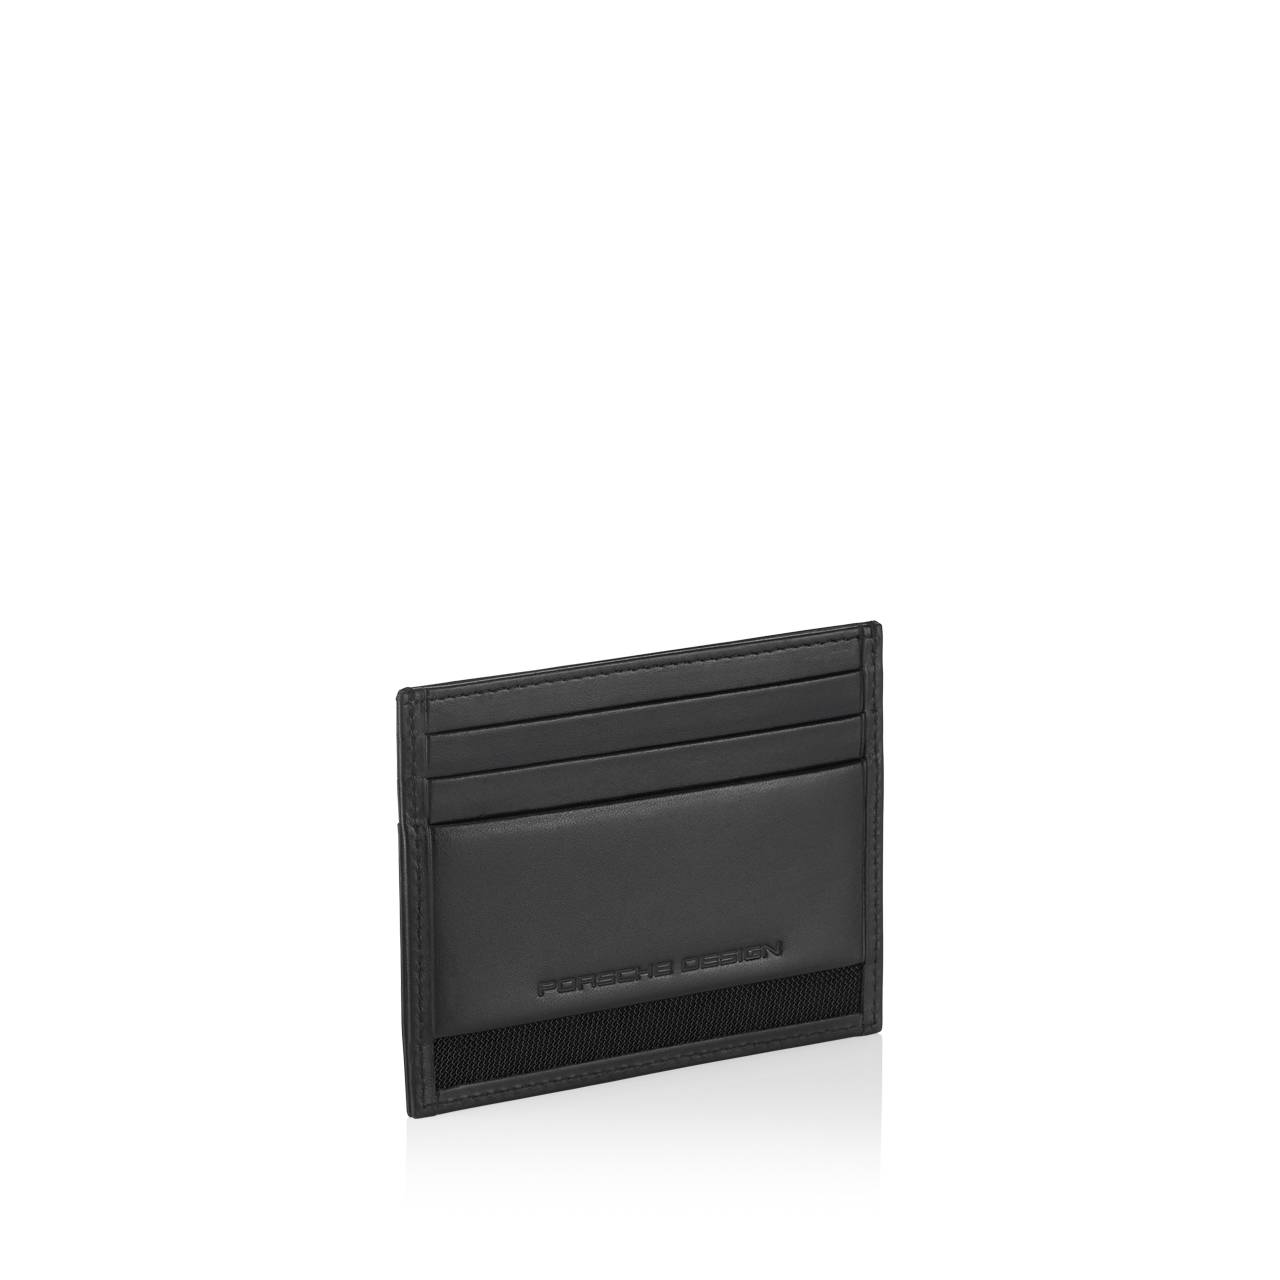 CL2 3.0 Card SH6 Holder